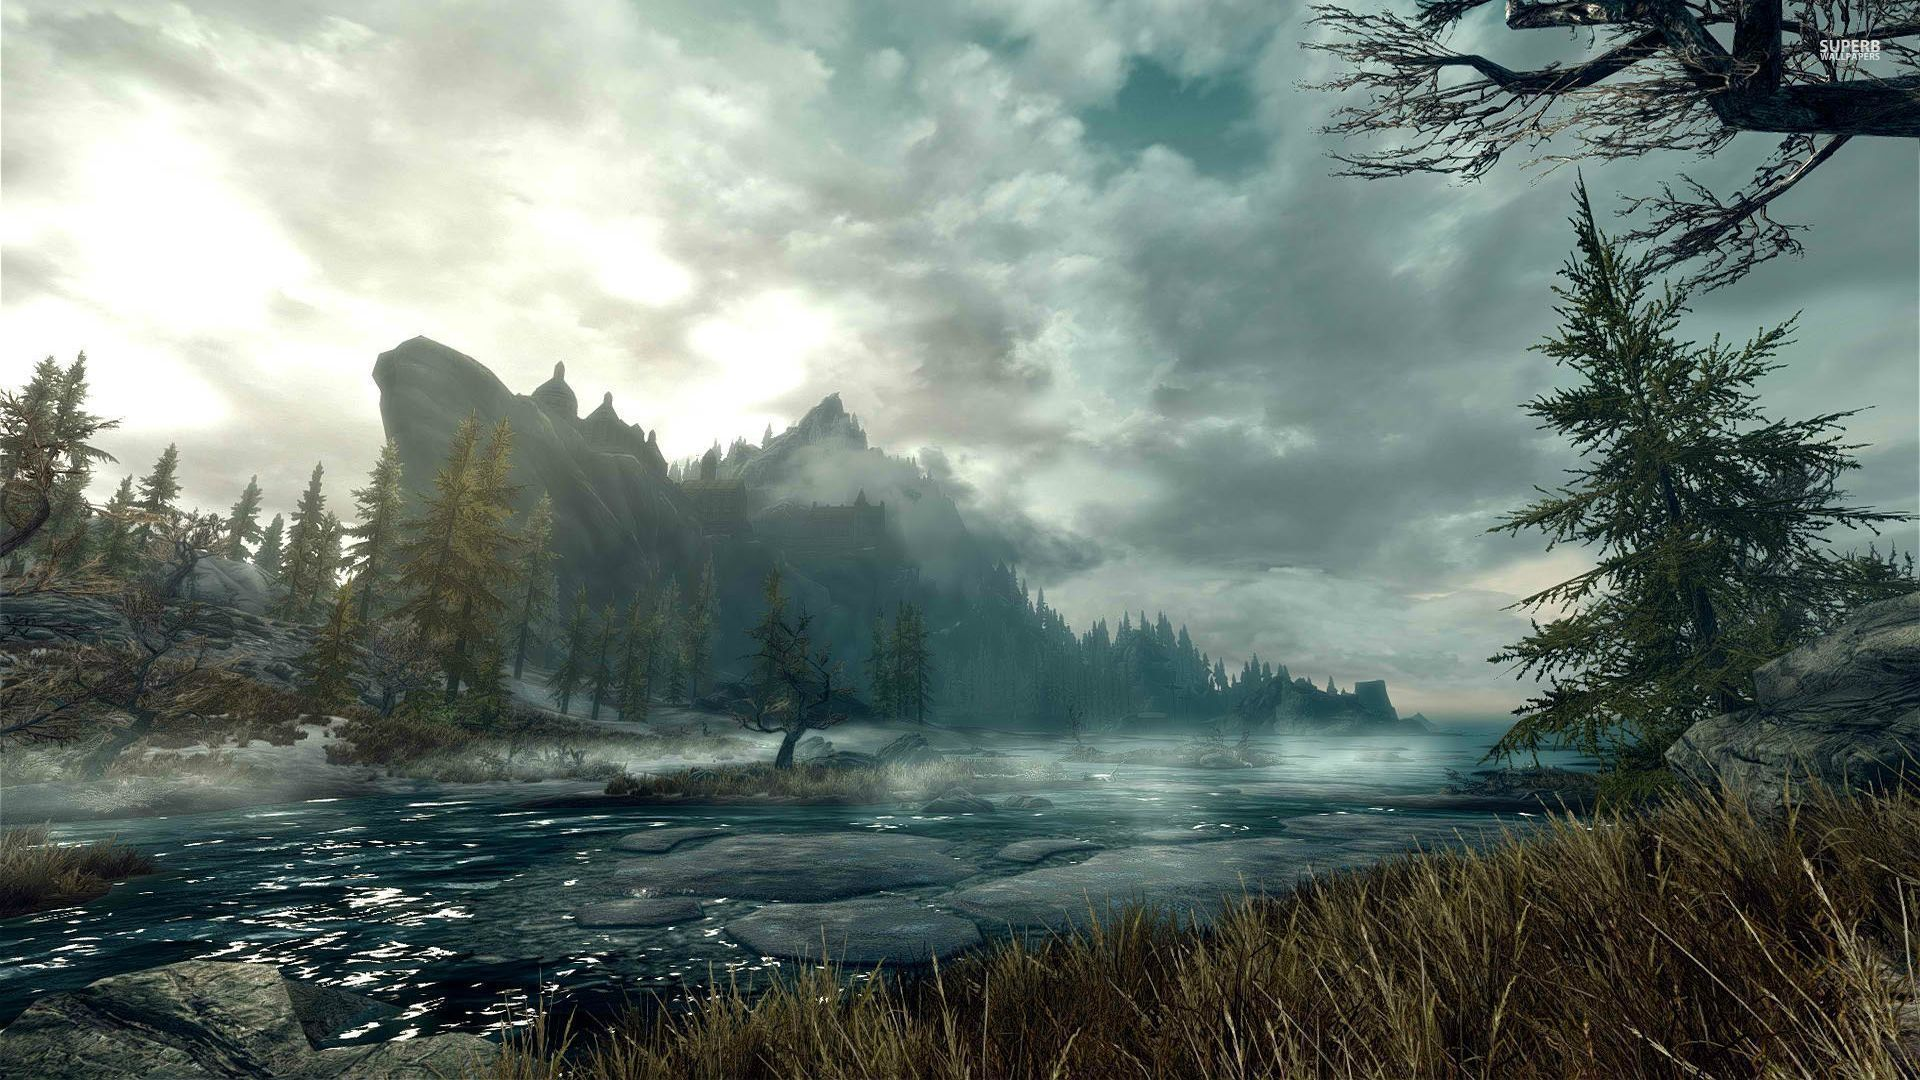 Skyrim Wallpapers p Group 19201200 Skyrim Wallpapers 44